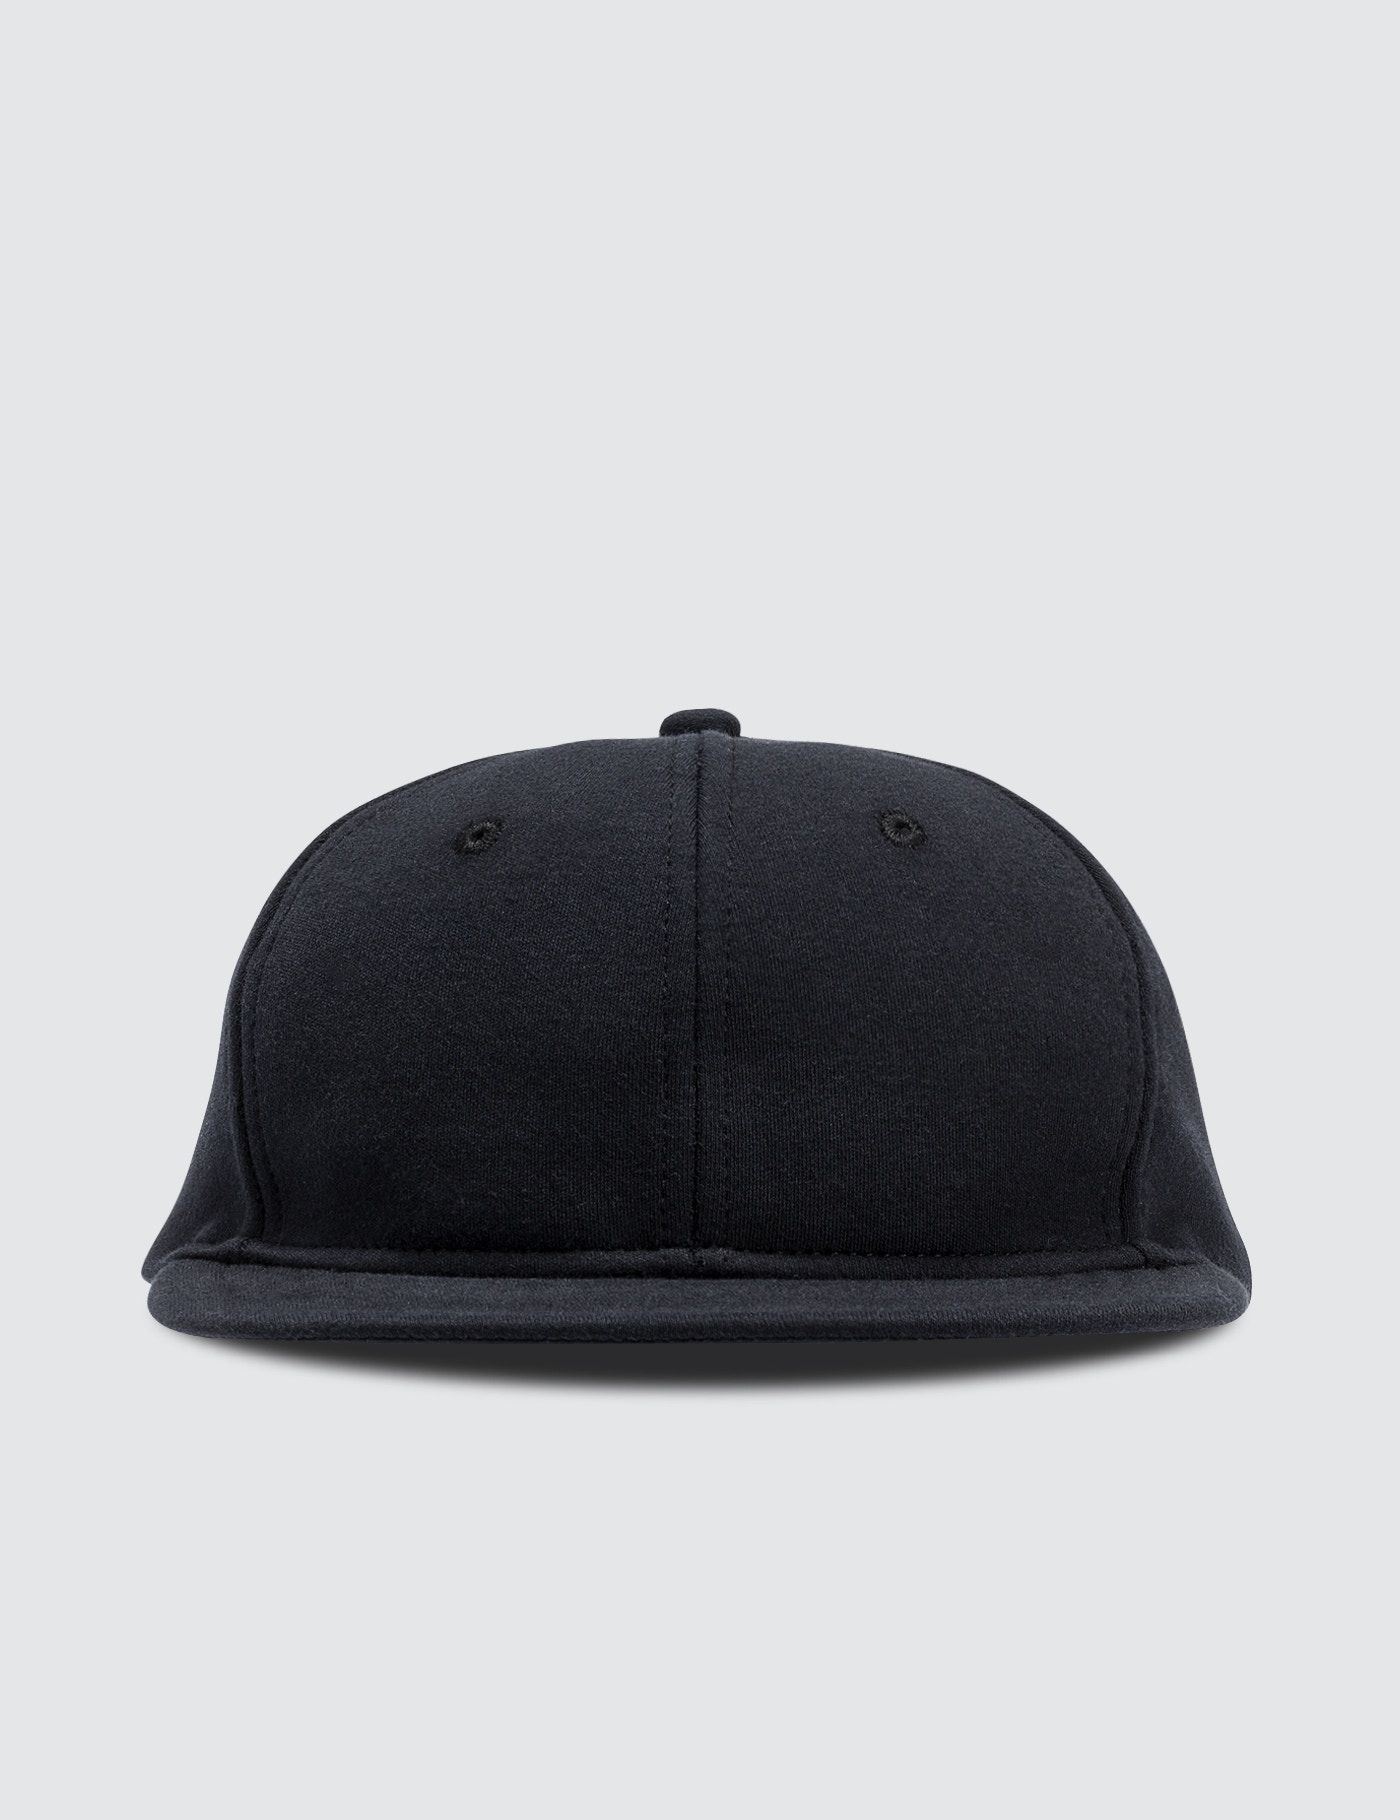 cb1f573361 Buy Original REIGNING CHAMP Bonded Terry 6-Panel Hat at Indonesia ...